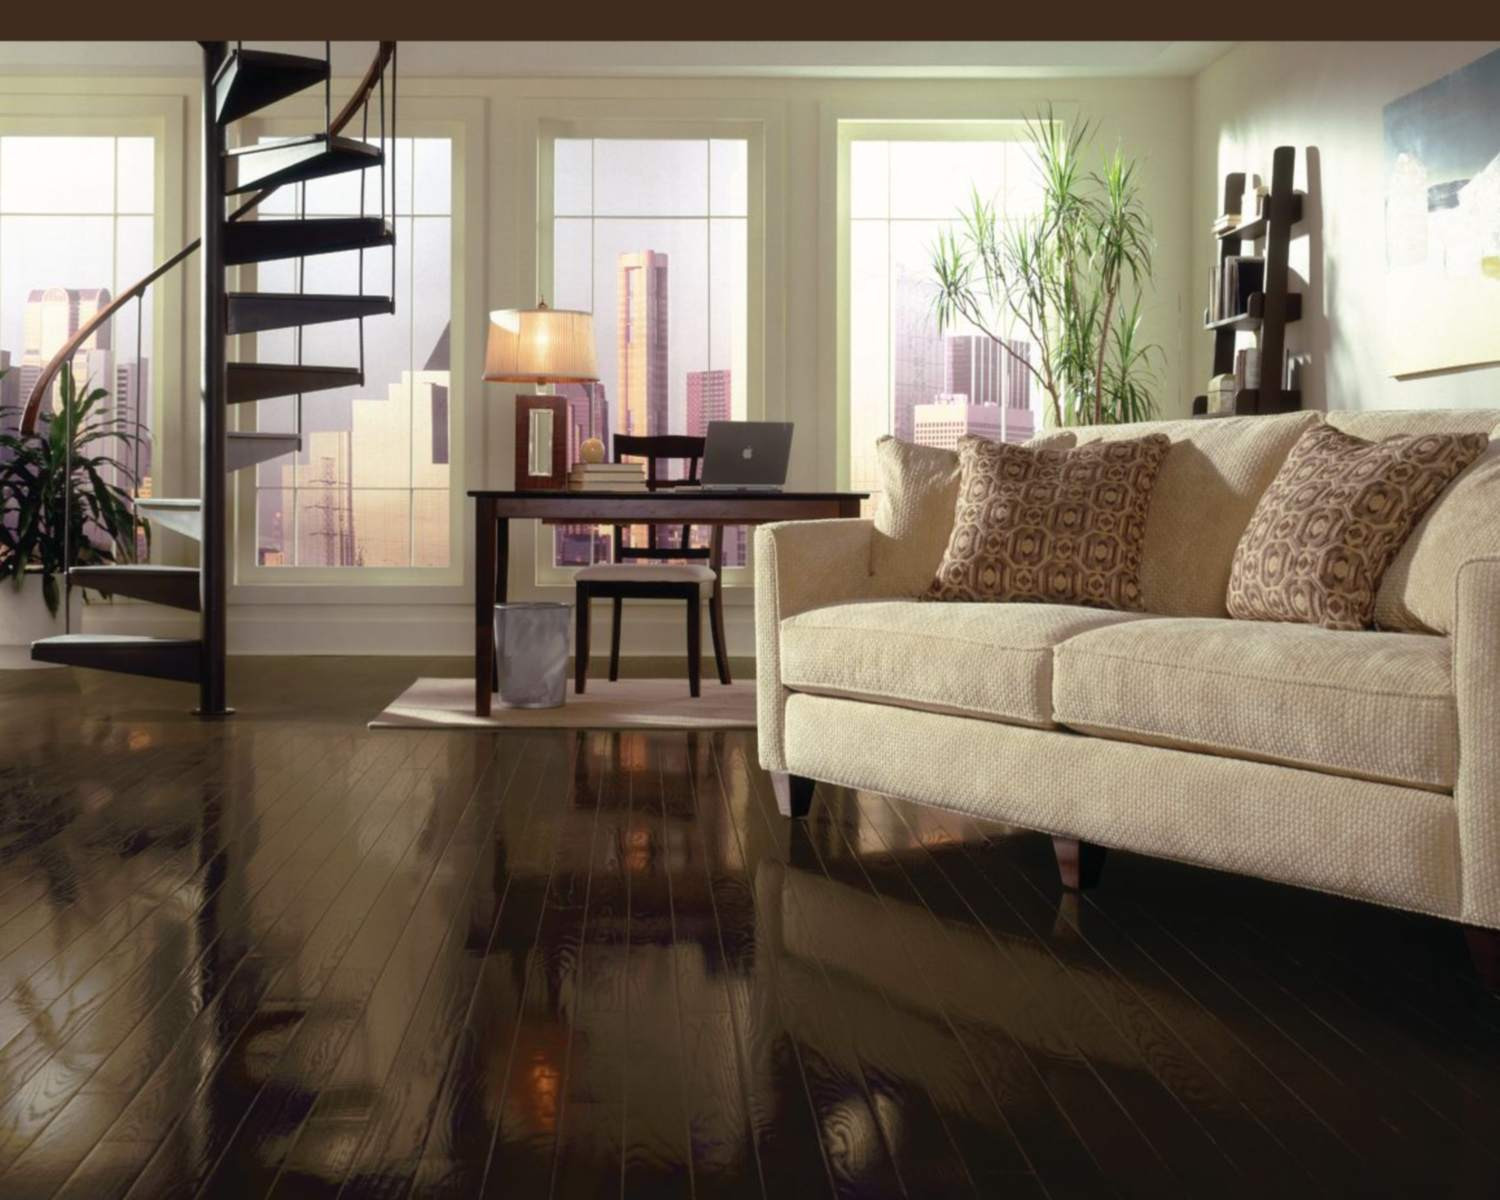 hardwood floor manufacturers ratings of top 5 brands for solid hardwood flooring within a living room with bruce espresso oak flooring